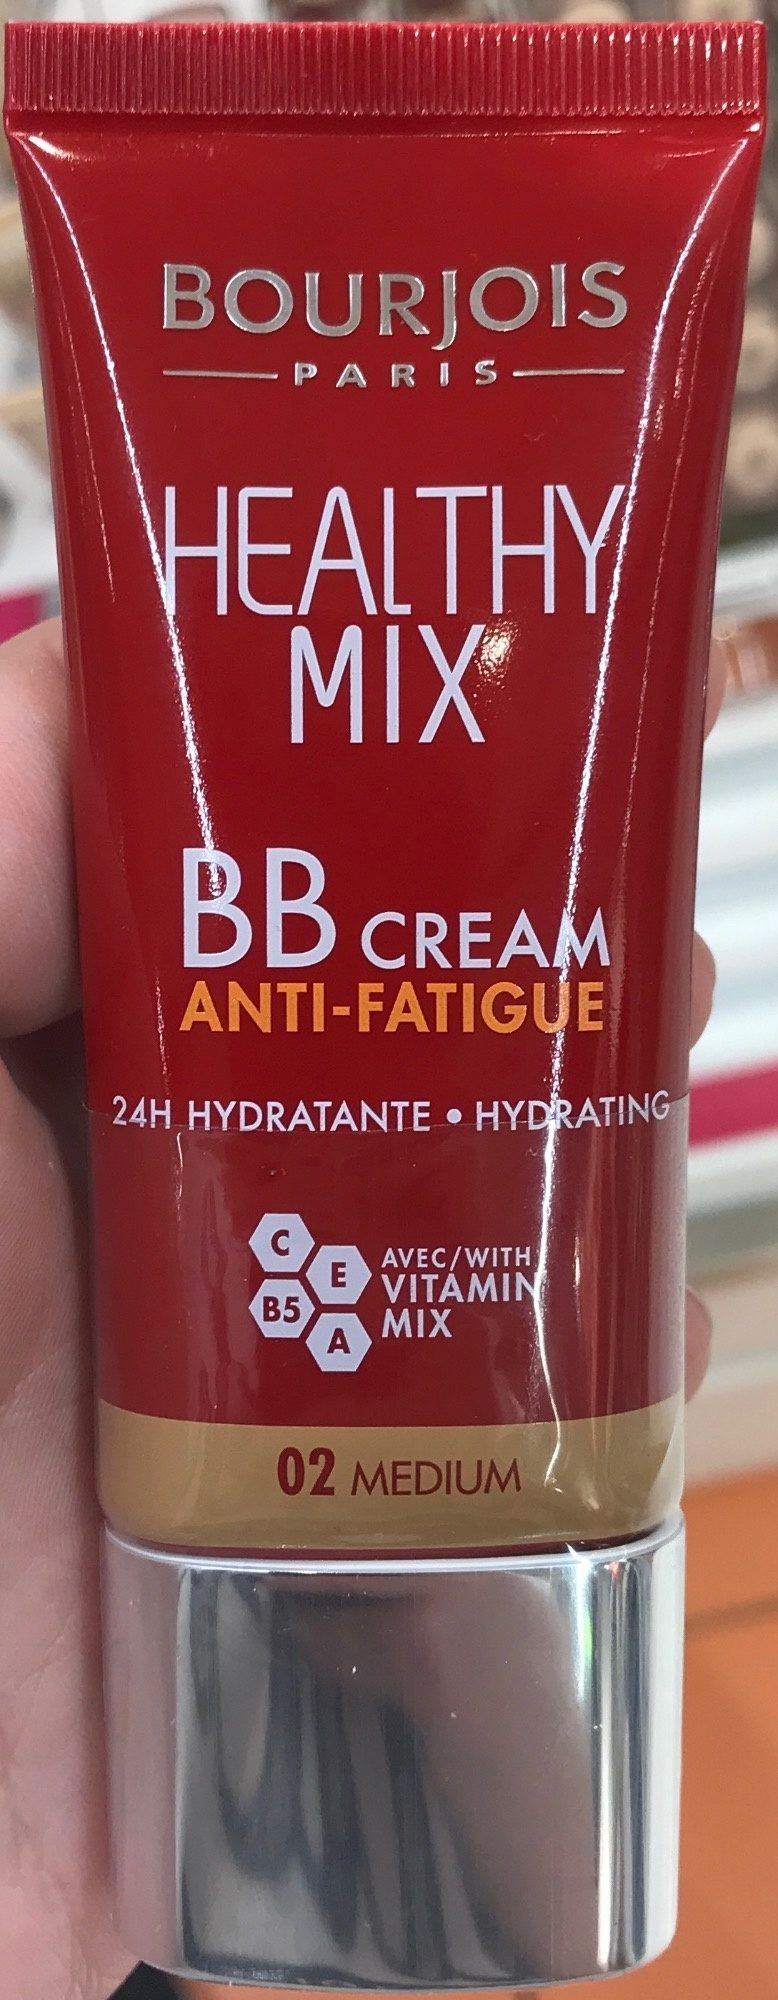 Healthy Mix BB Cream anti-fatigue 24H 02 Medium - Product